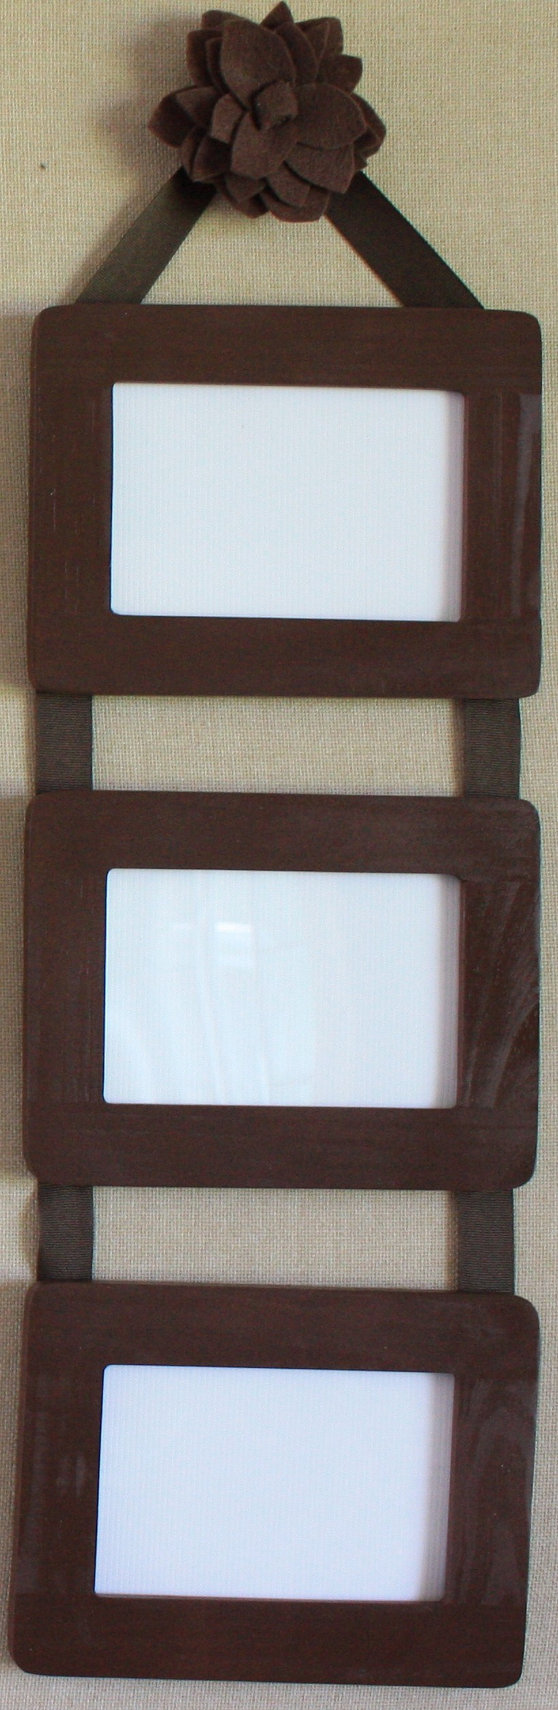 Ribbon Hanging Picture Frames / Set of 3 by LisaMarieAccessories ...